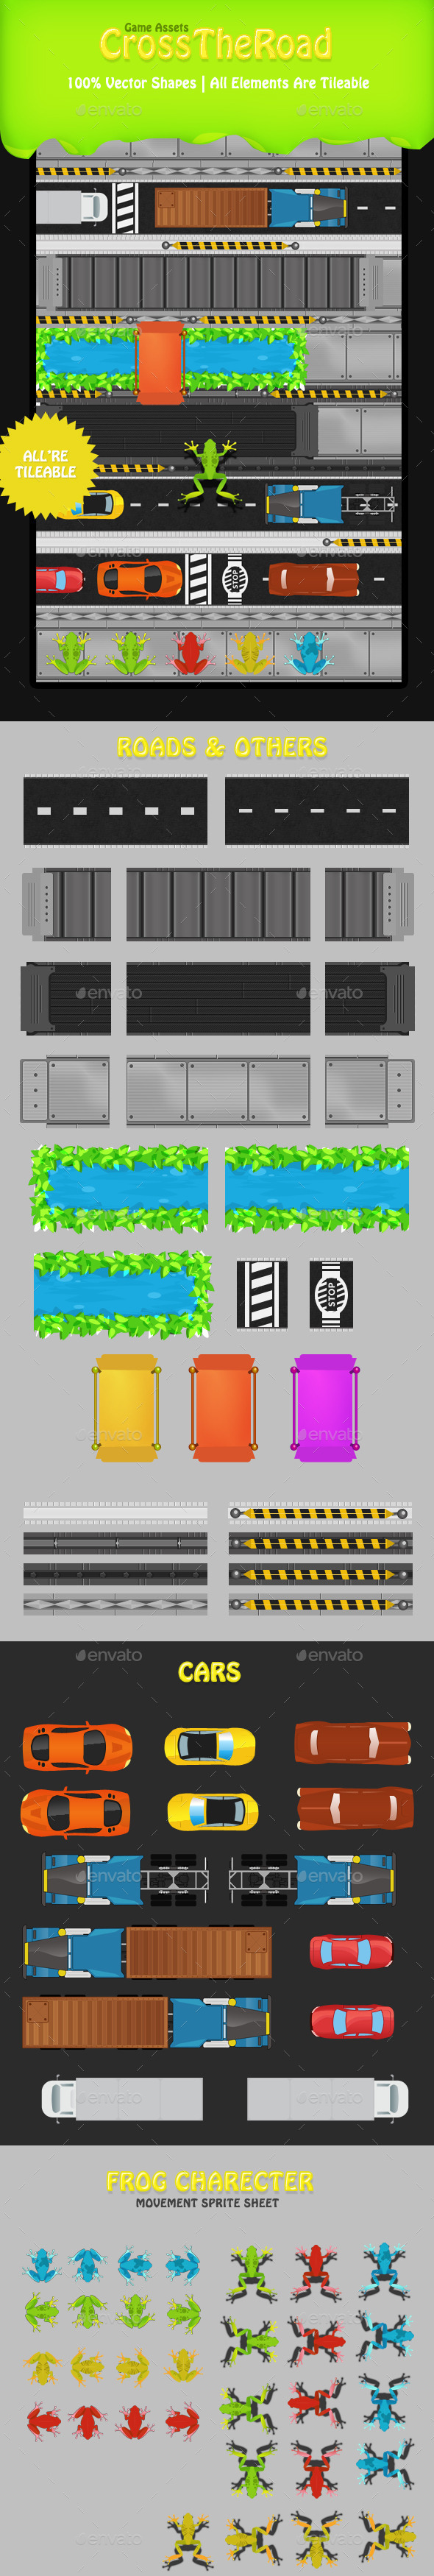 GraphicRiver Cross The Road Frog Game Tileset & Sprite Sheet 8822790